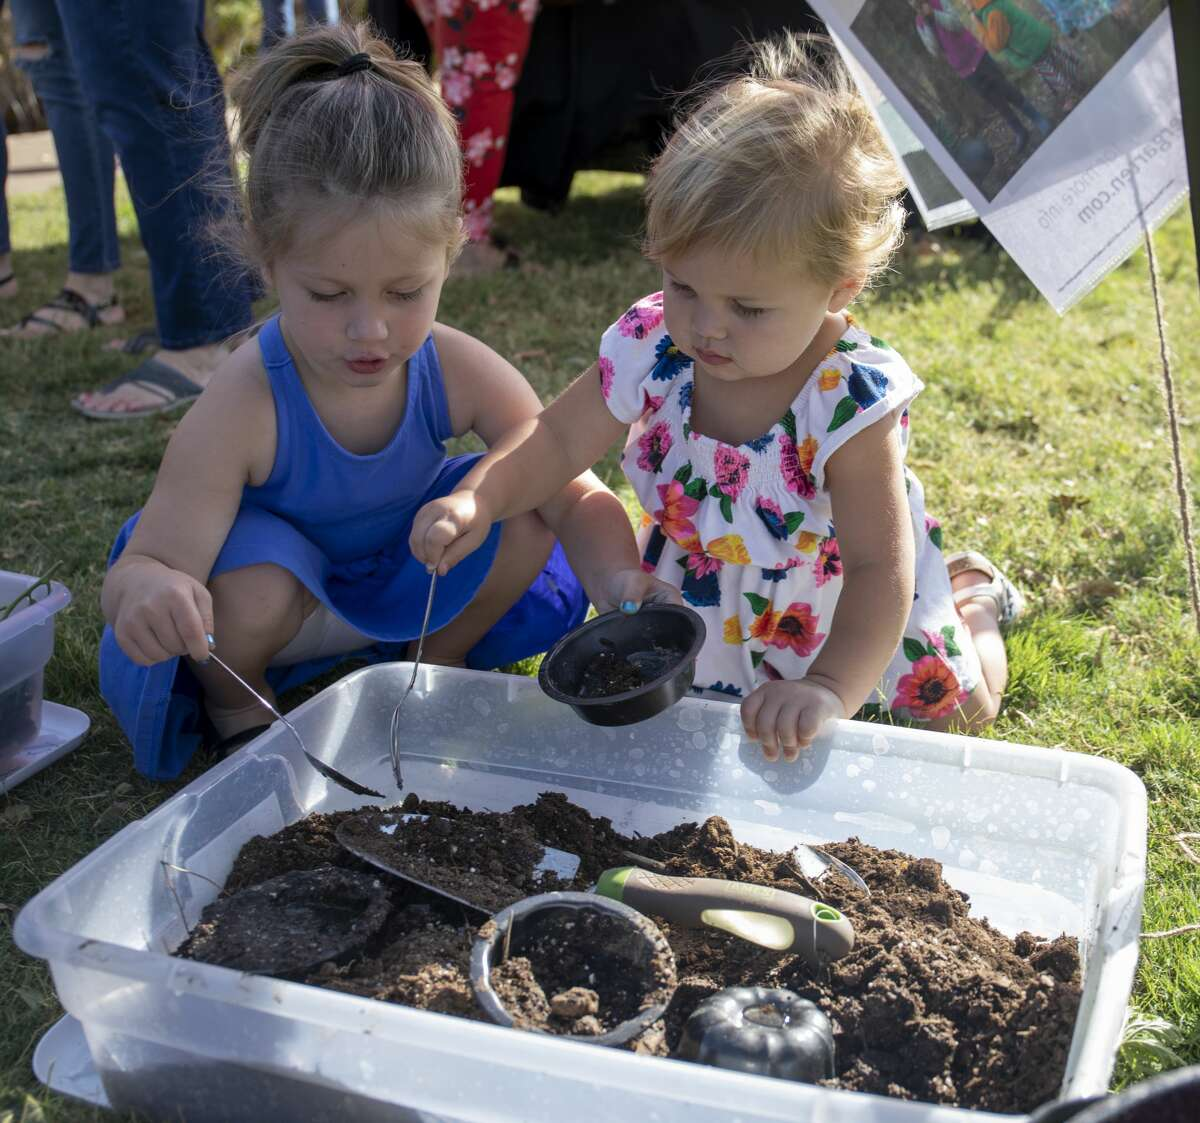 Jacqueline and Lanie Culver play with dirt at the Tinkergarten booth at the Midland Farmer's Market on Saturday, Aug. 17, 2019 at the Museum of the Southwest.